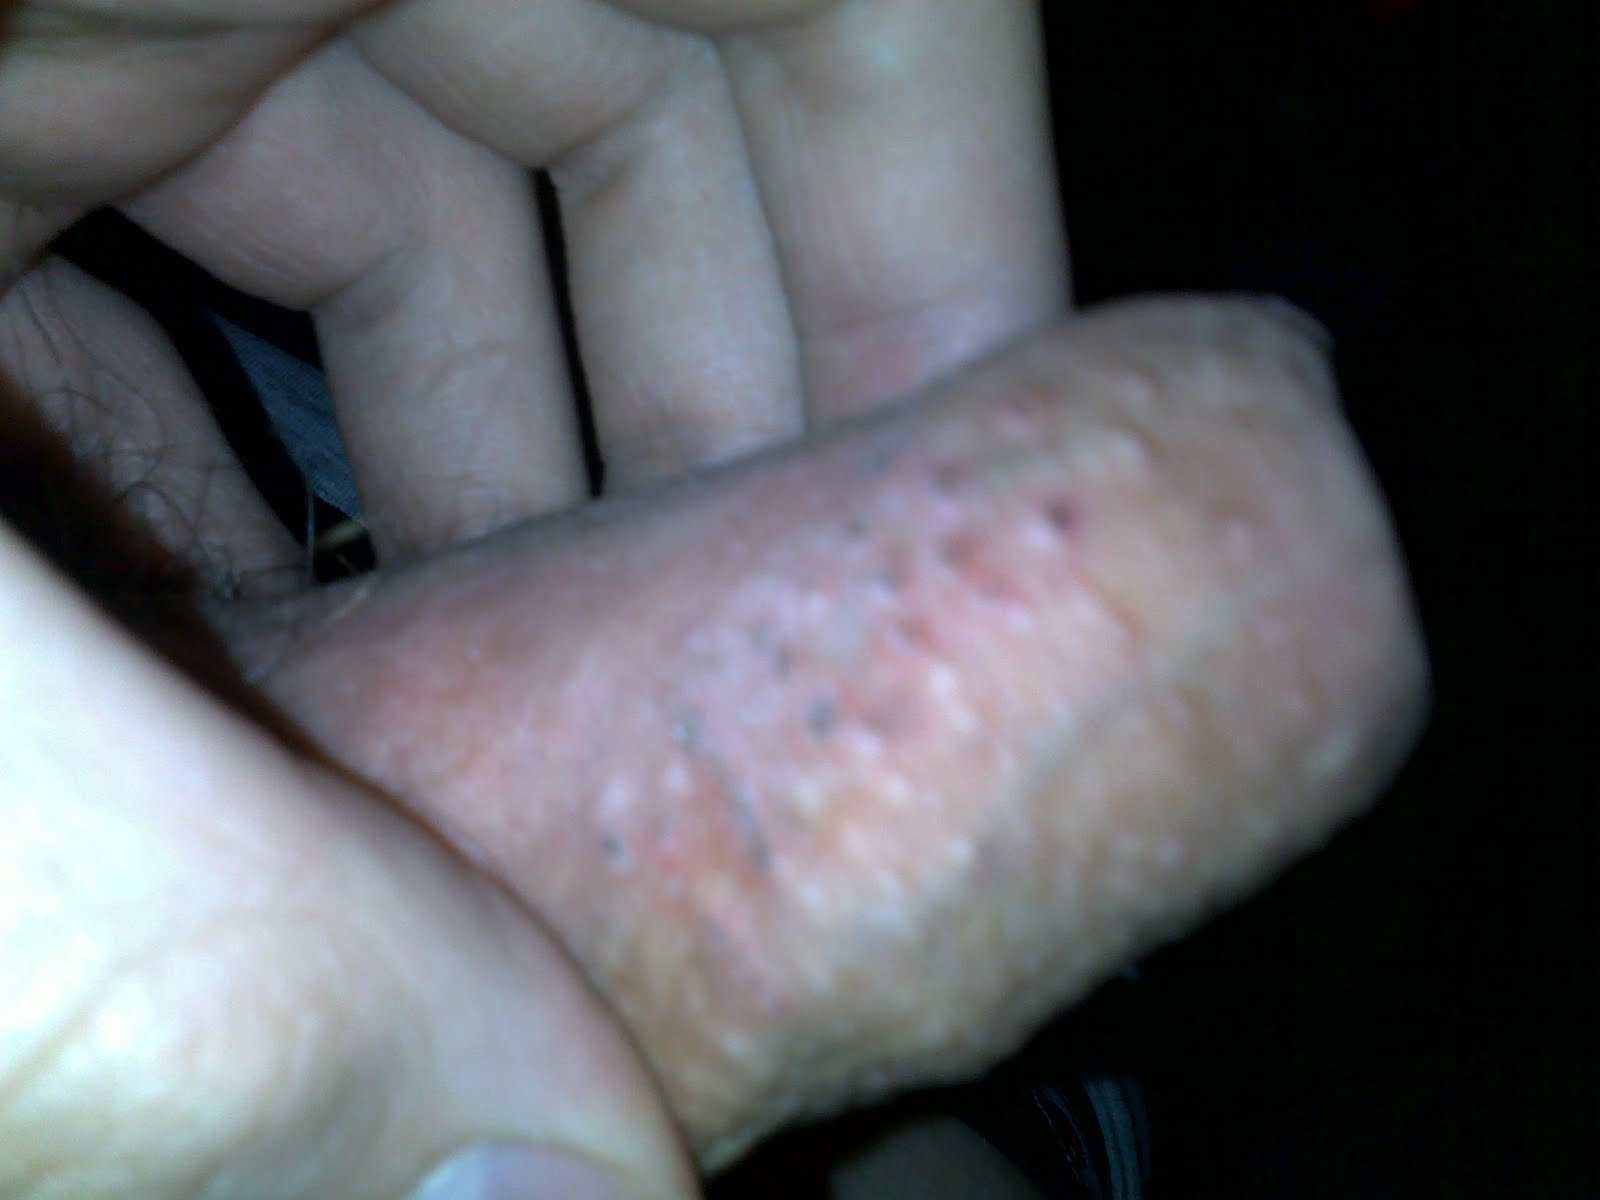 Irritation at penis tip